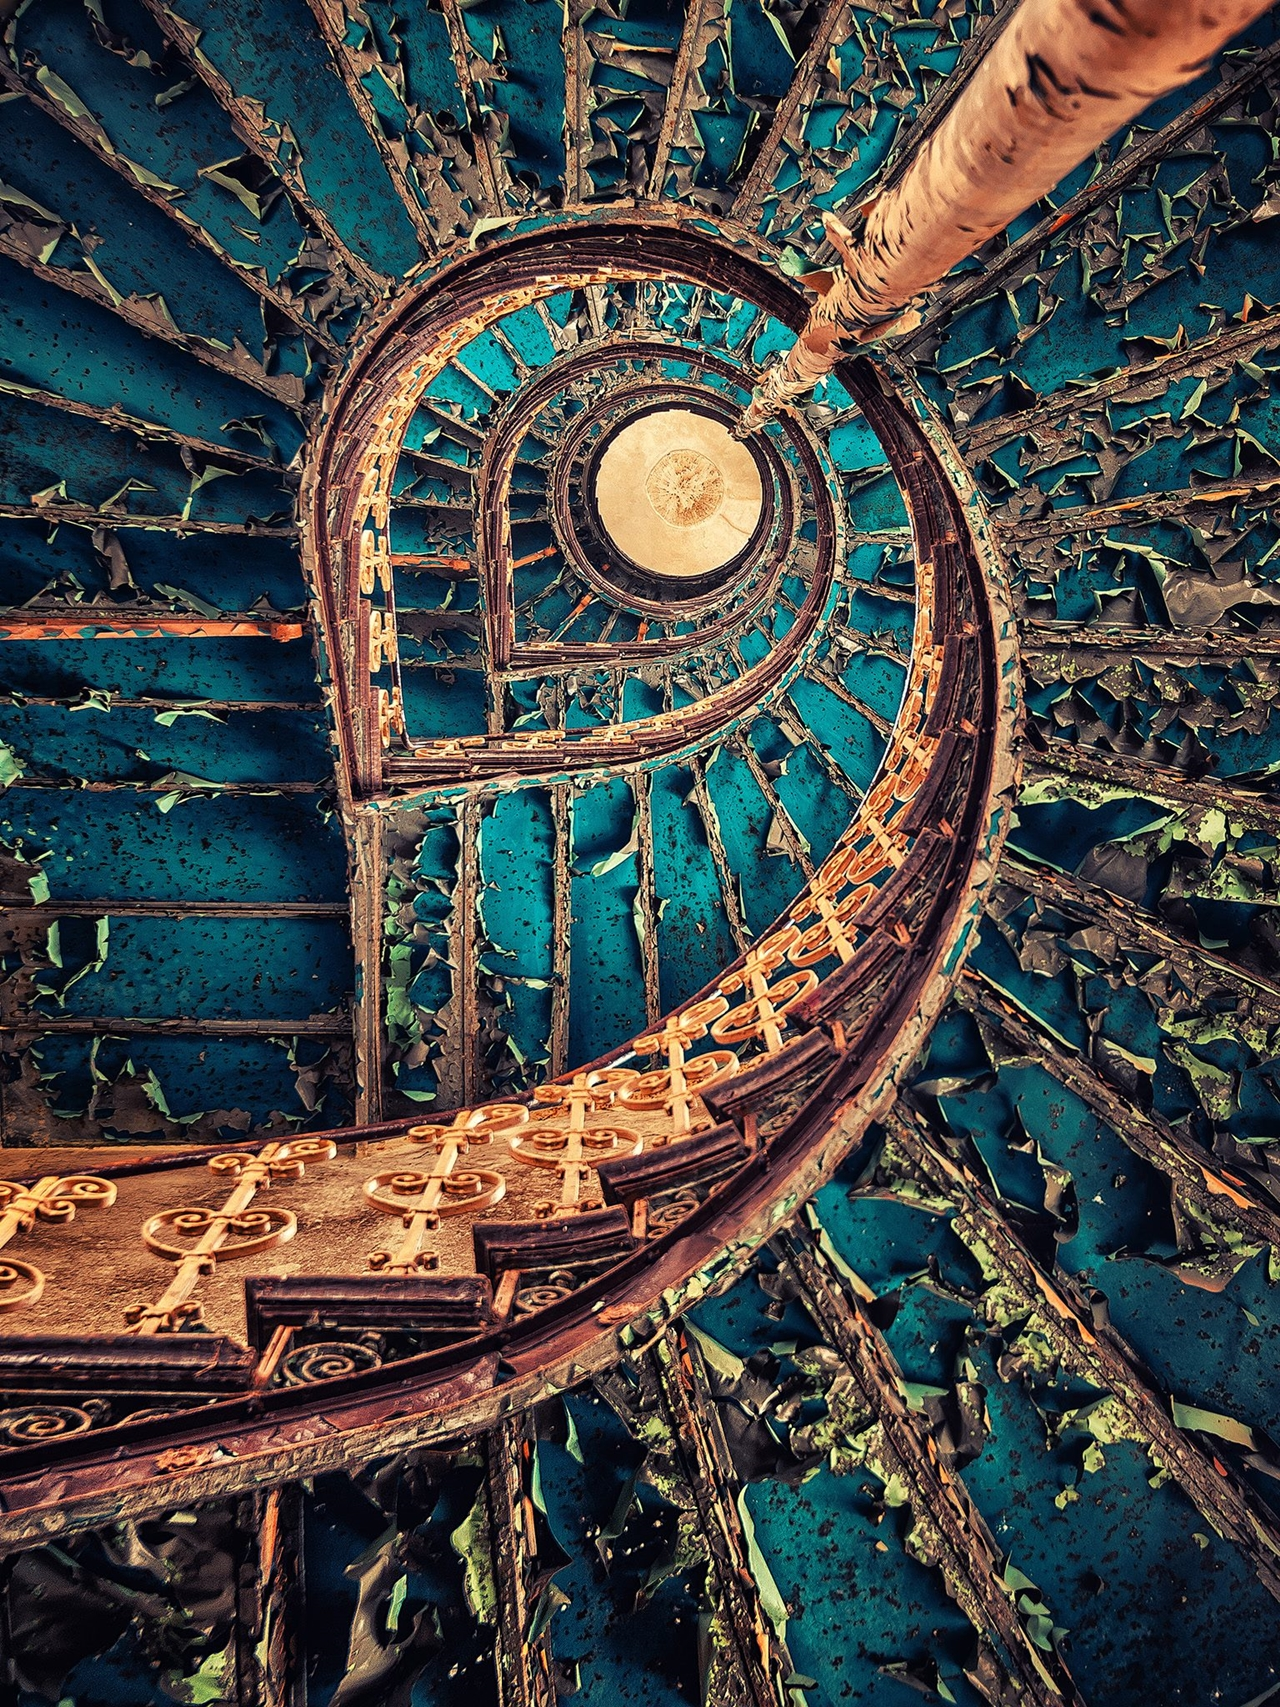 The abstract beauty of abandoned spaces in the works of Matthias Hacker 15